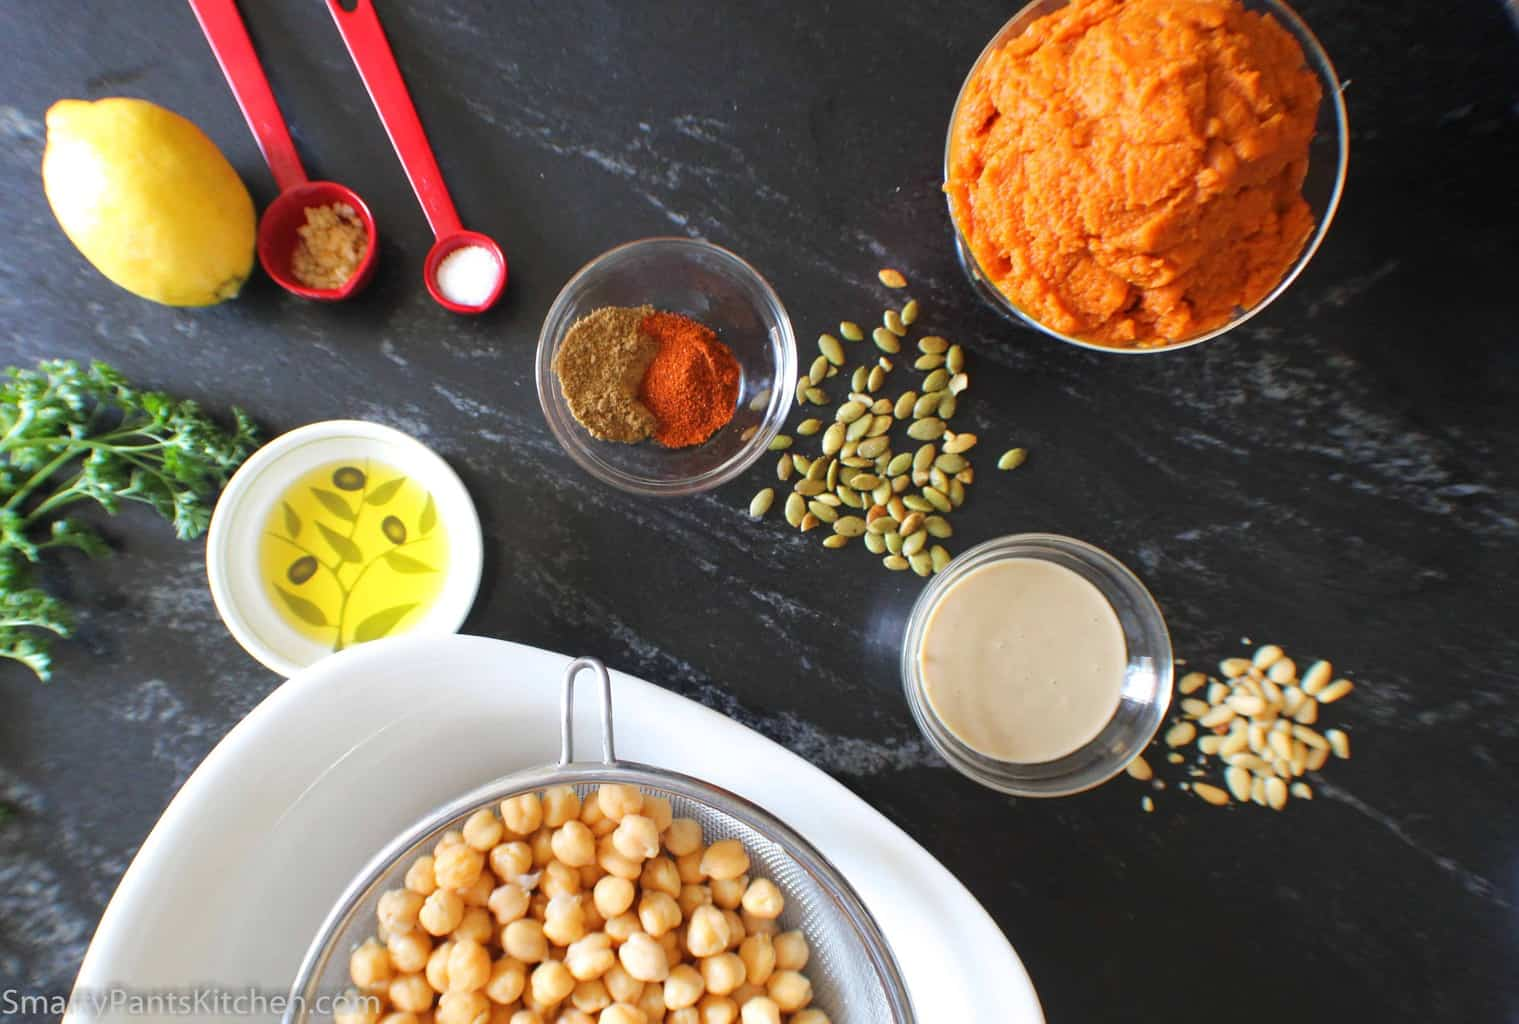 Ingredients for hummus on black marble counter